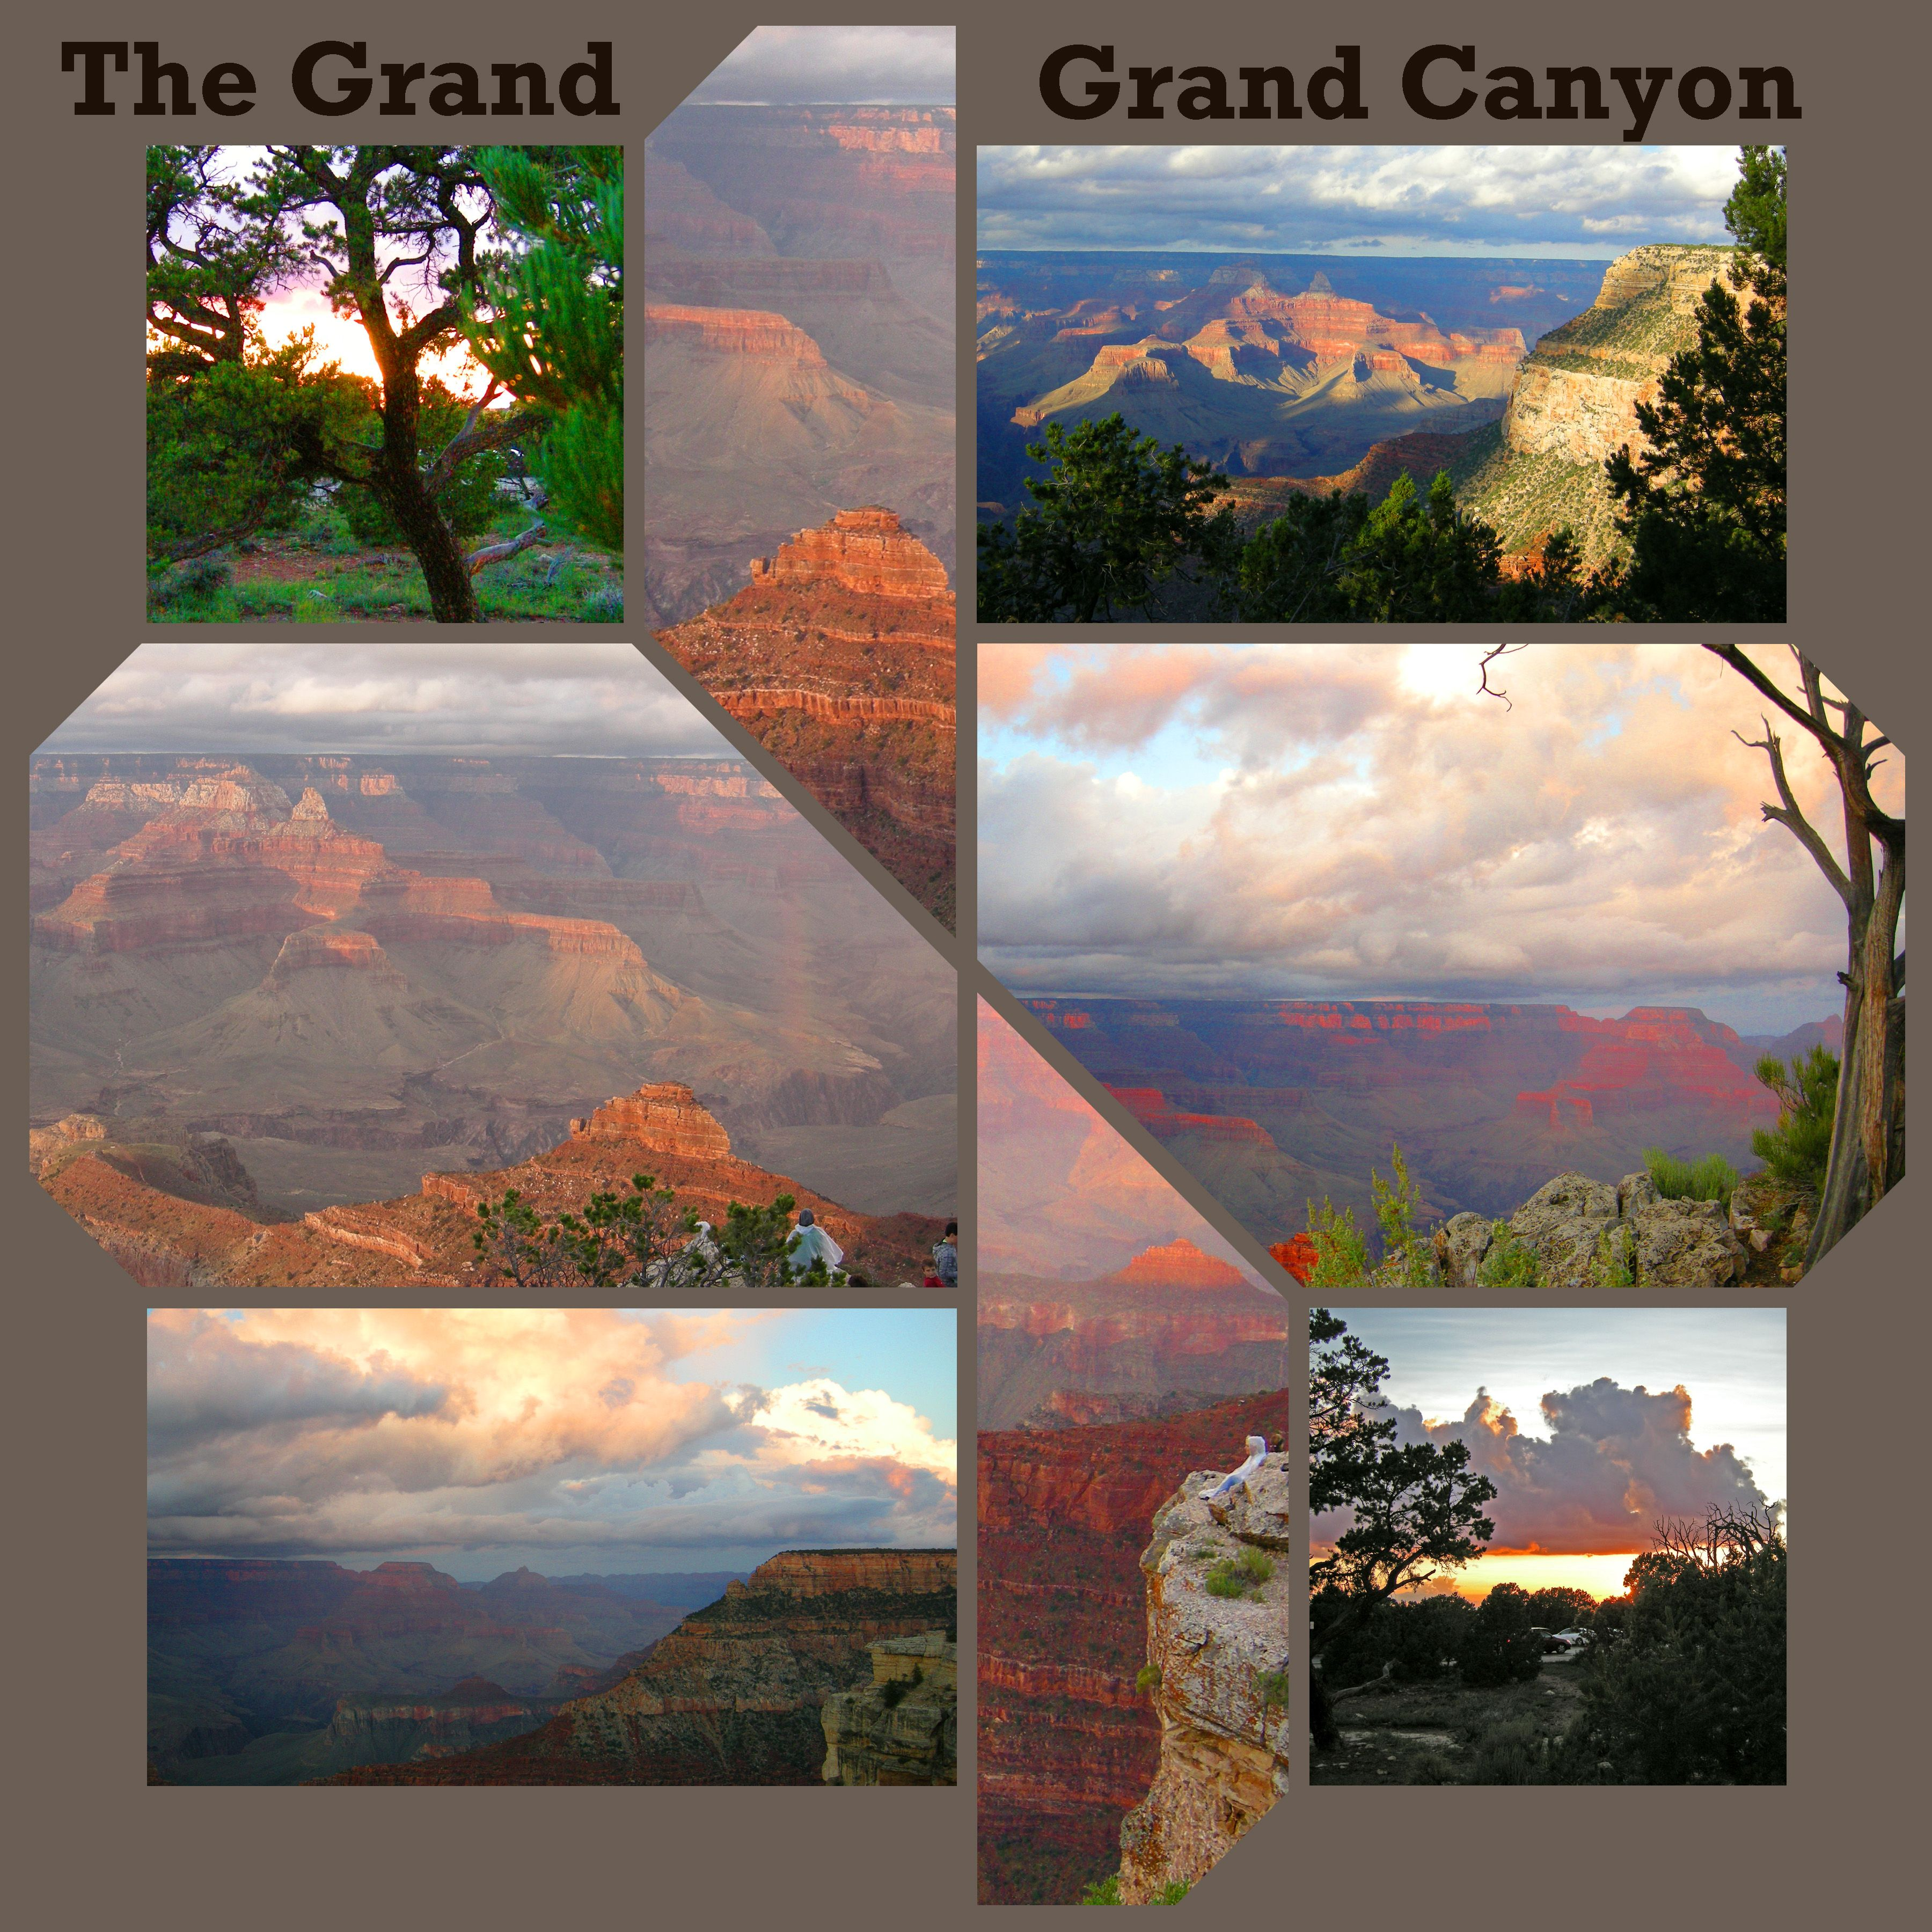 grand canyon layout by sandra b king created using lea france digital stained glass. Black Bedroom Furniture Sets. Home Design Ideas